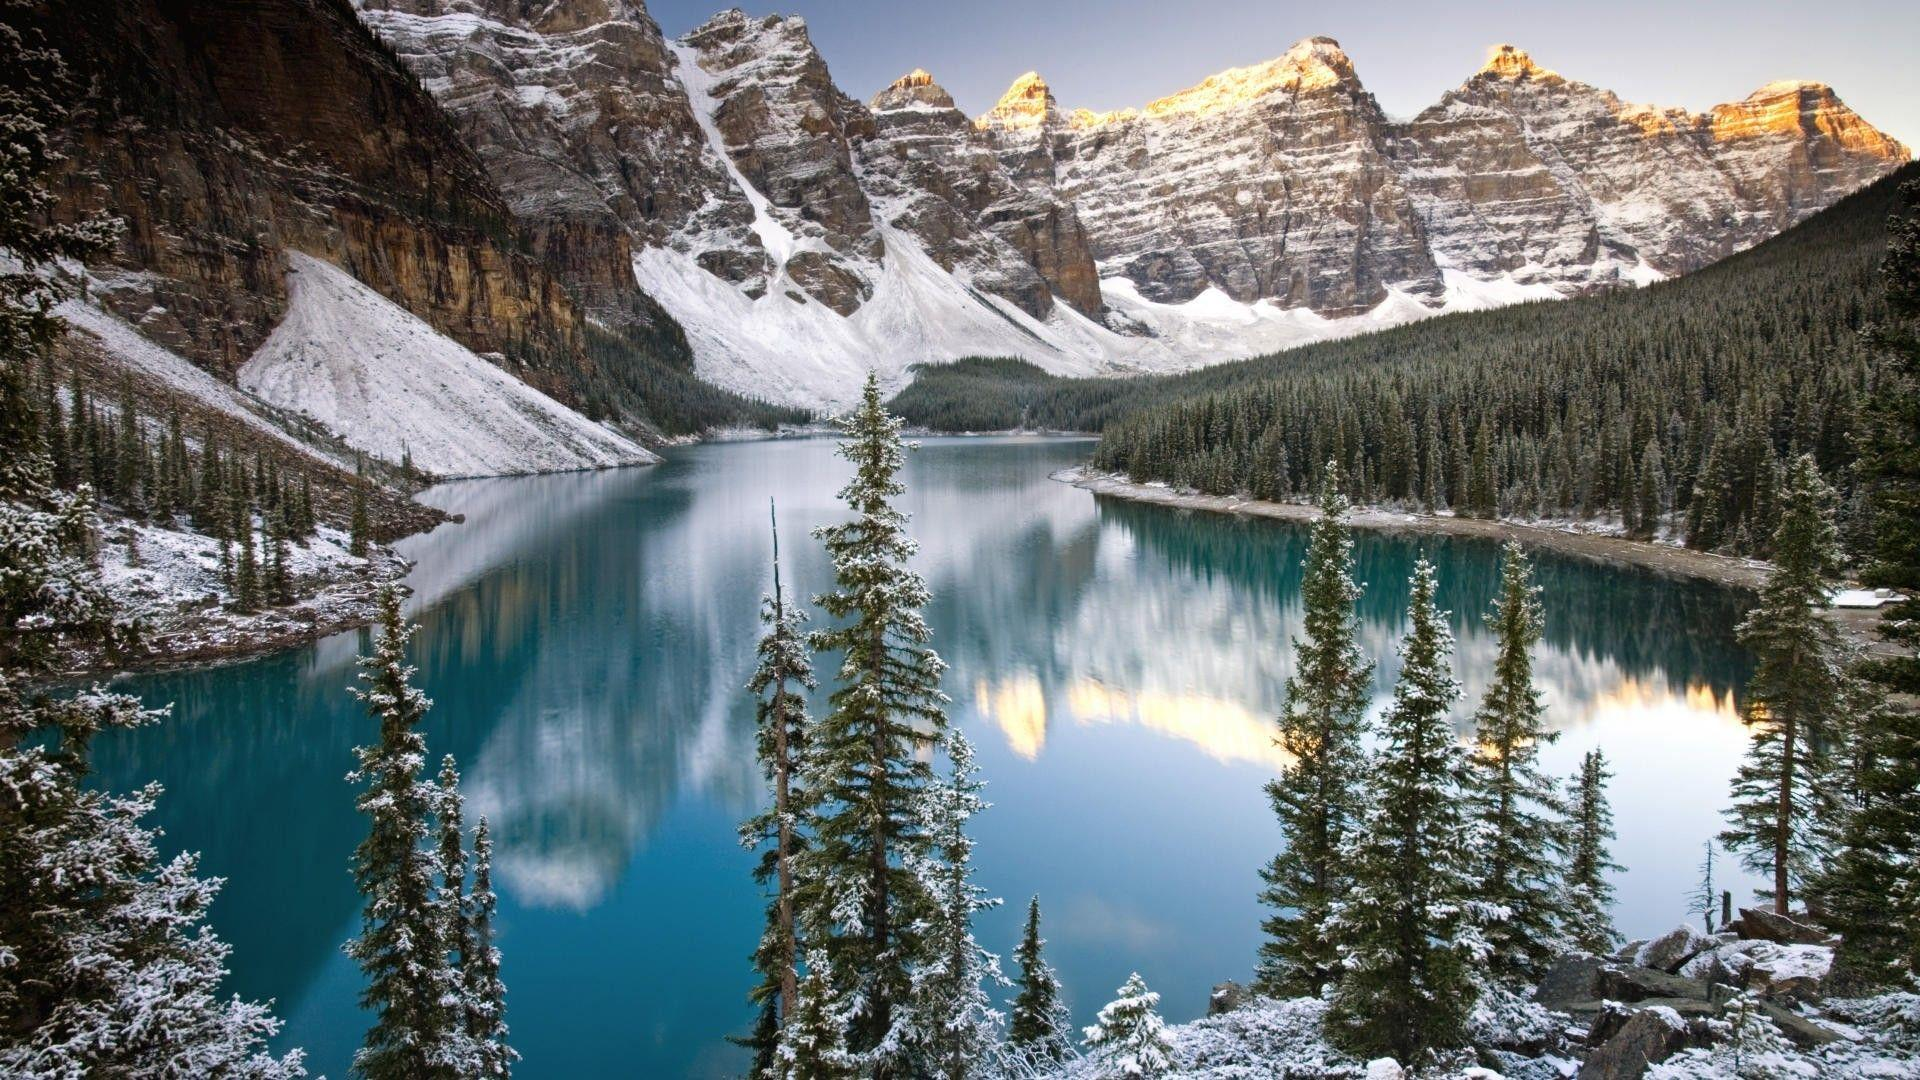 Alberta banff national park canada winter wallpapers